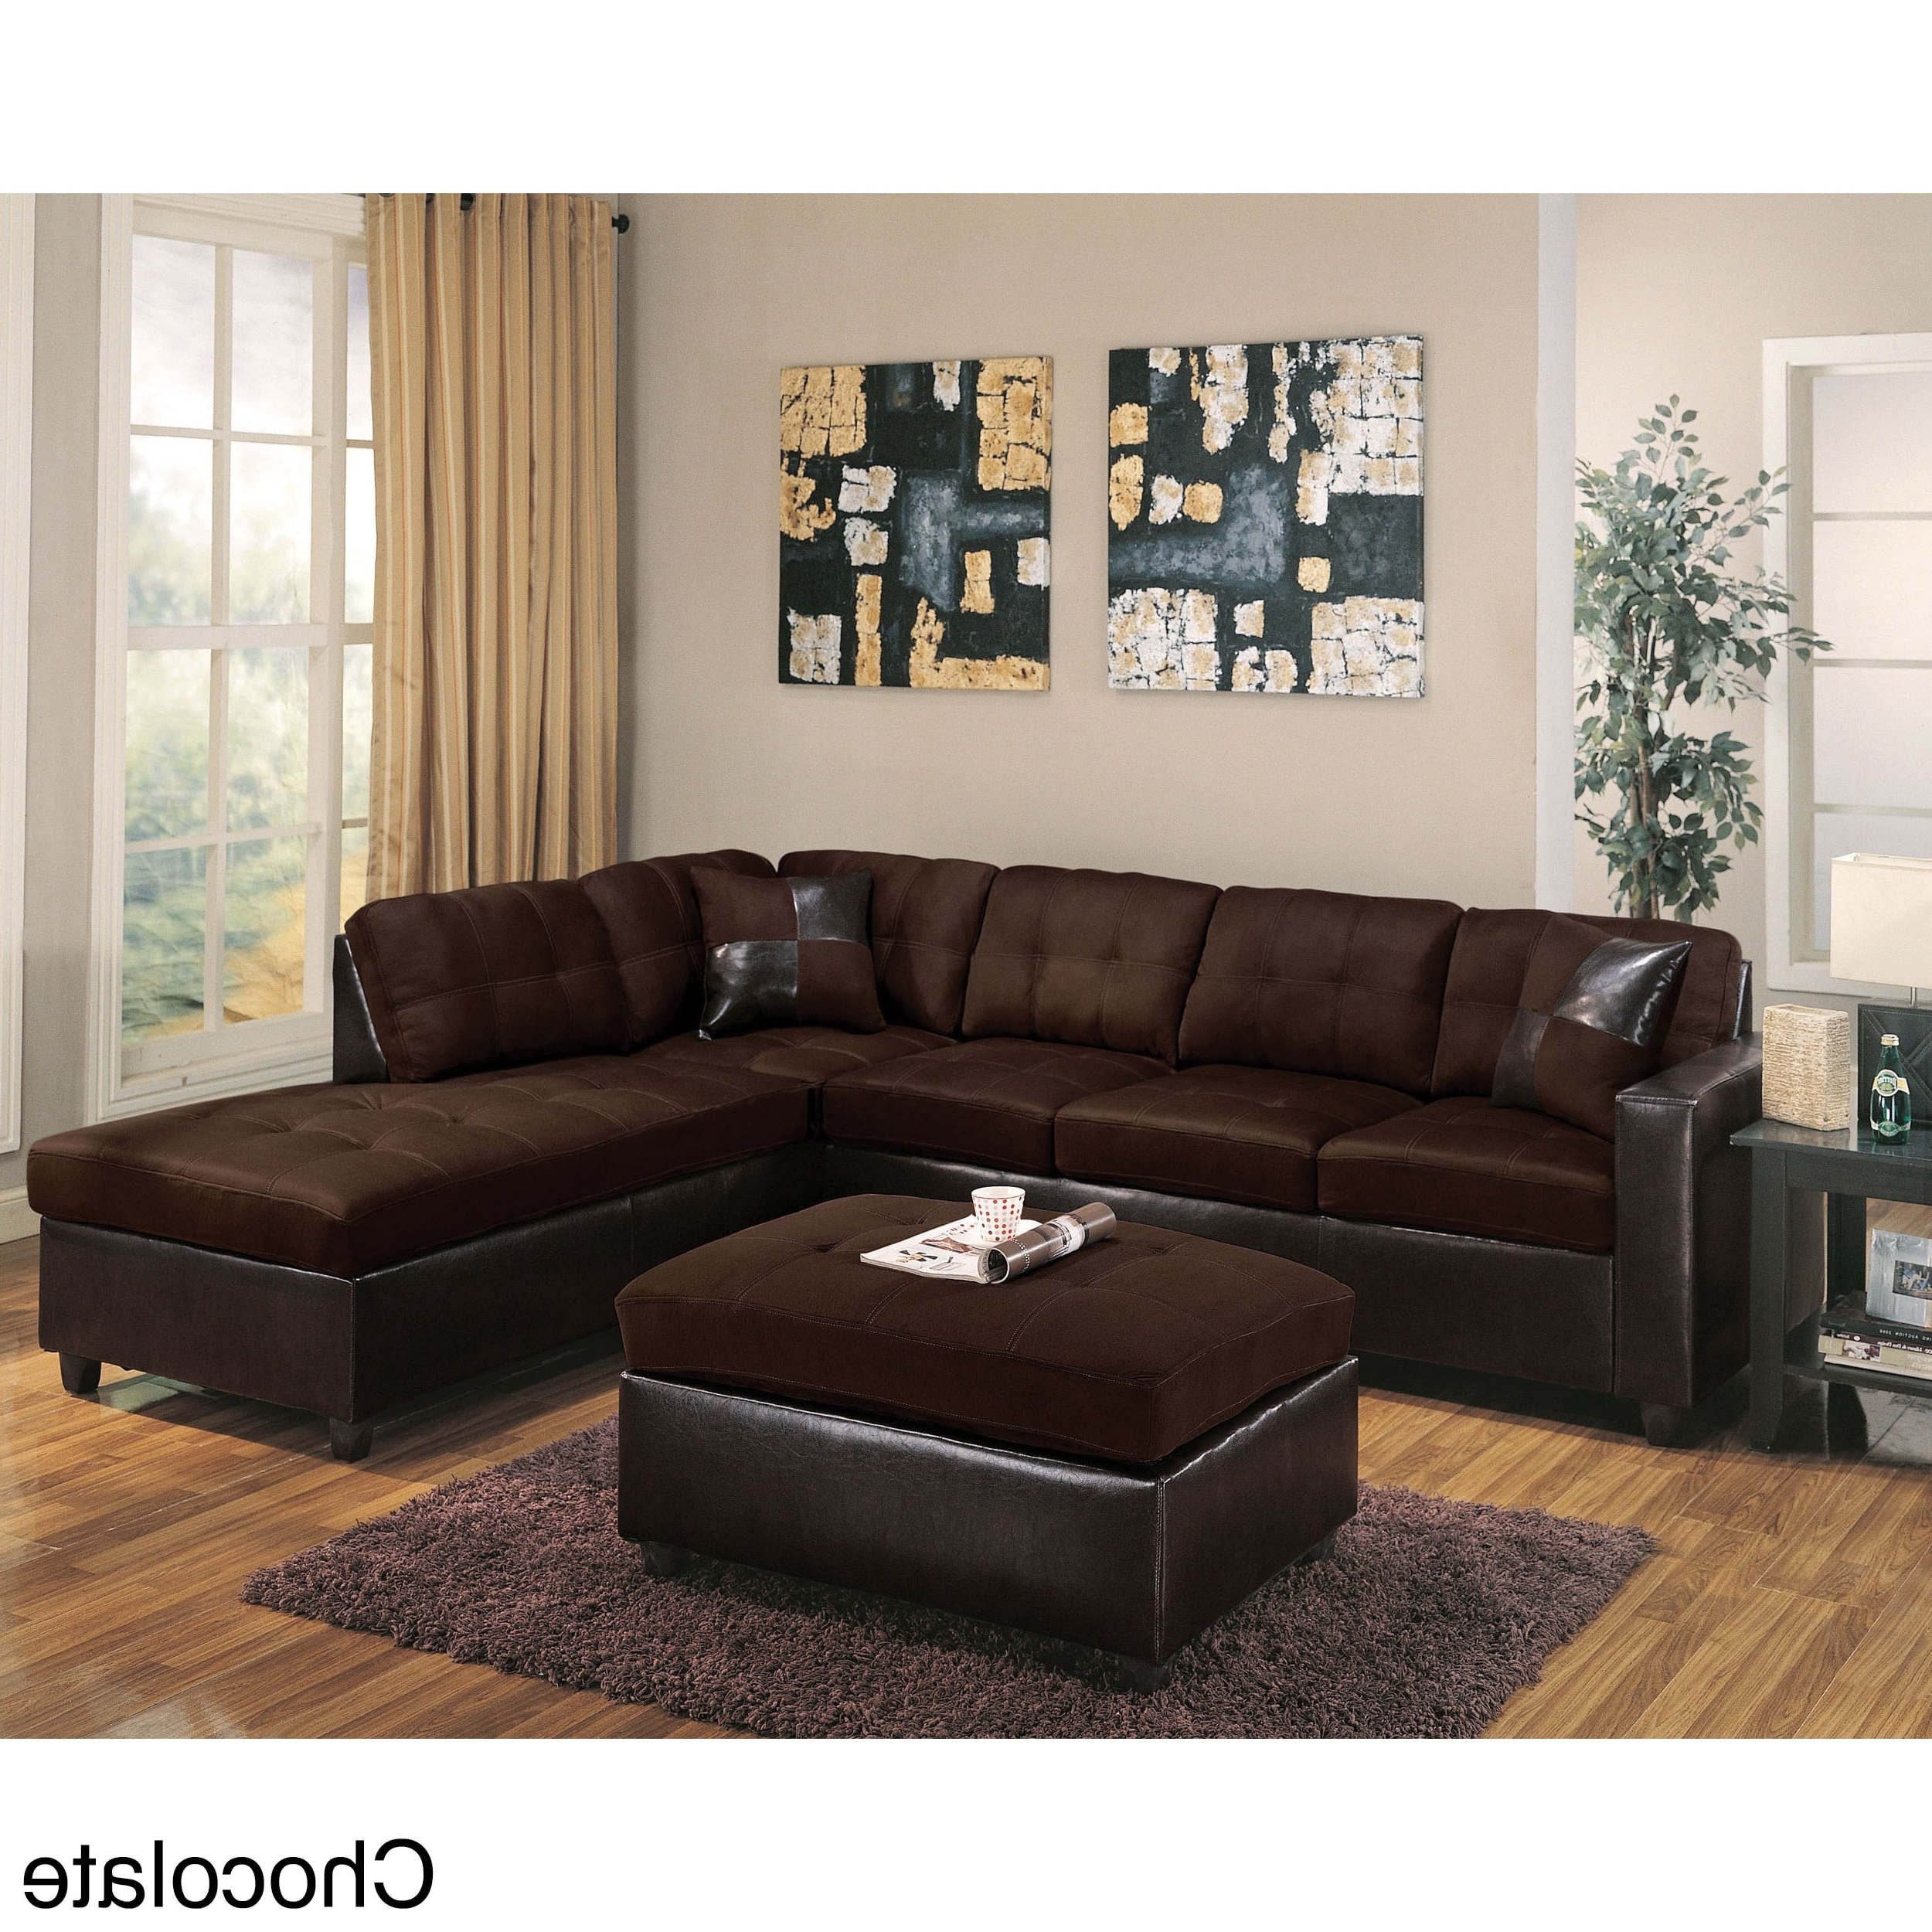 Milano Reversible Sectional Sofa In Chocolate Easy Rider And Inside Well Known Chocolate Sectional Sofas (View 13 of 20)